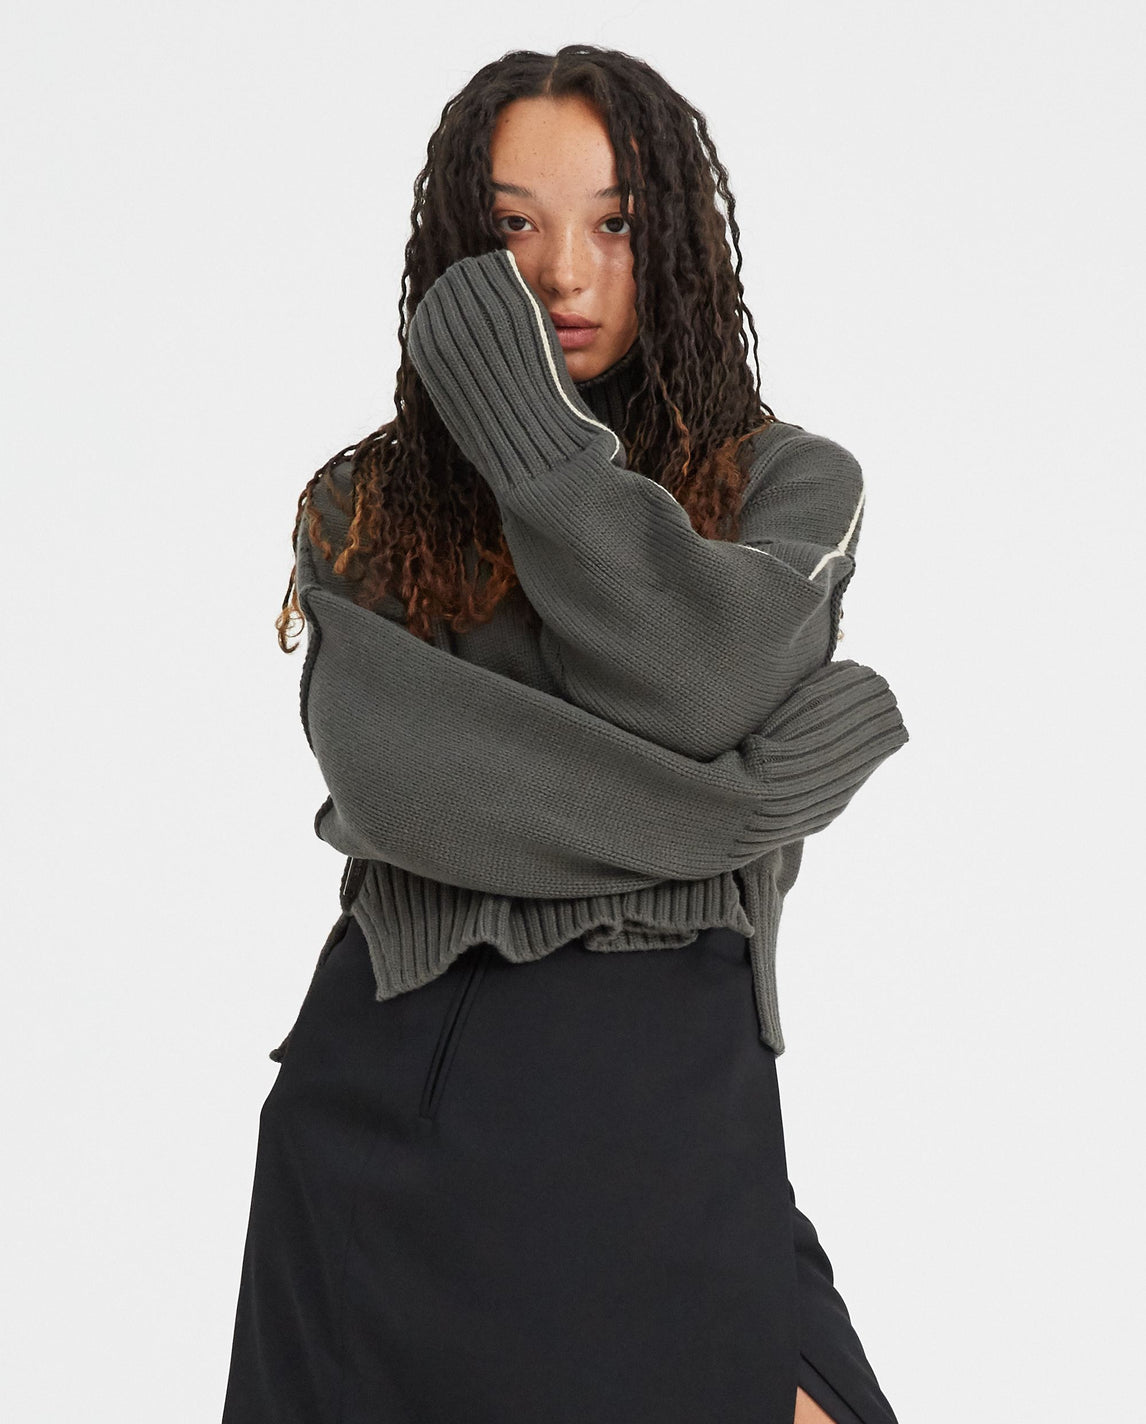 Cropped Oversized Sweater - Gun Metal WOMENS PETER DO